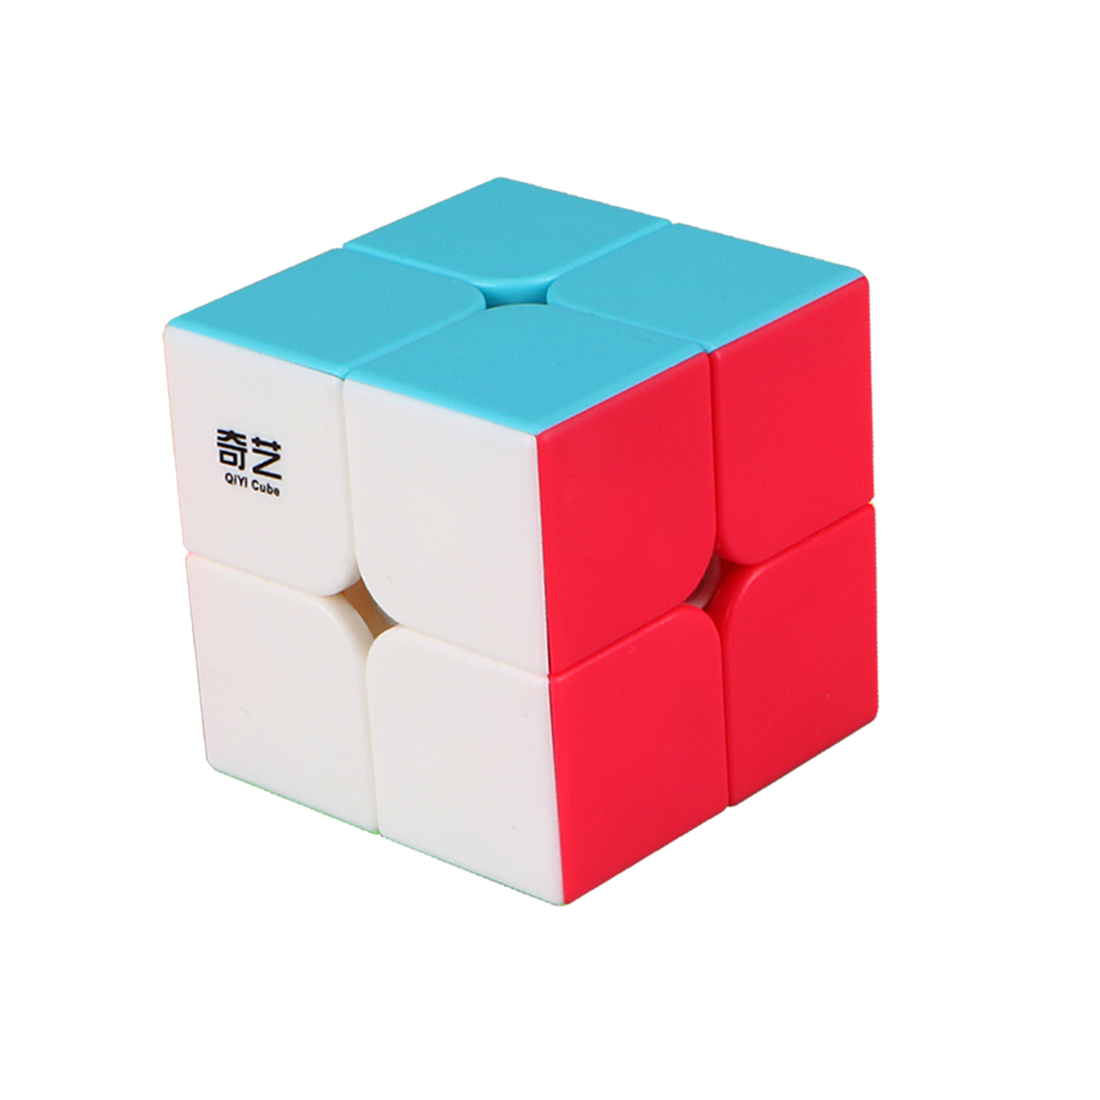 Qiyi QiDi S 2x2 Magic Cube Speed Cube Toy Рюкзак